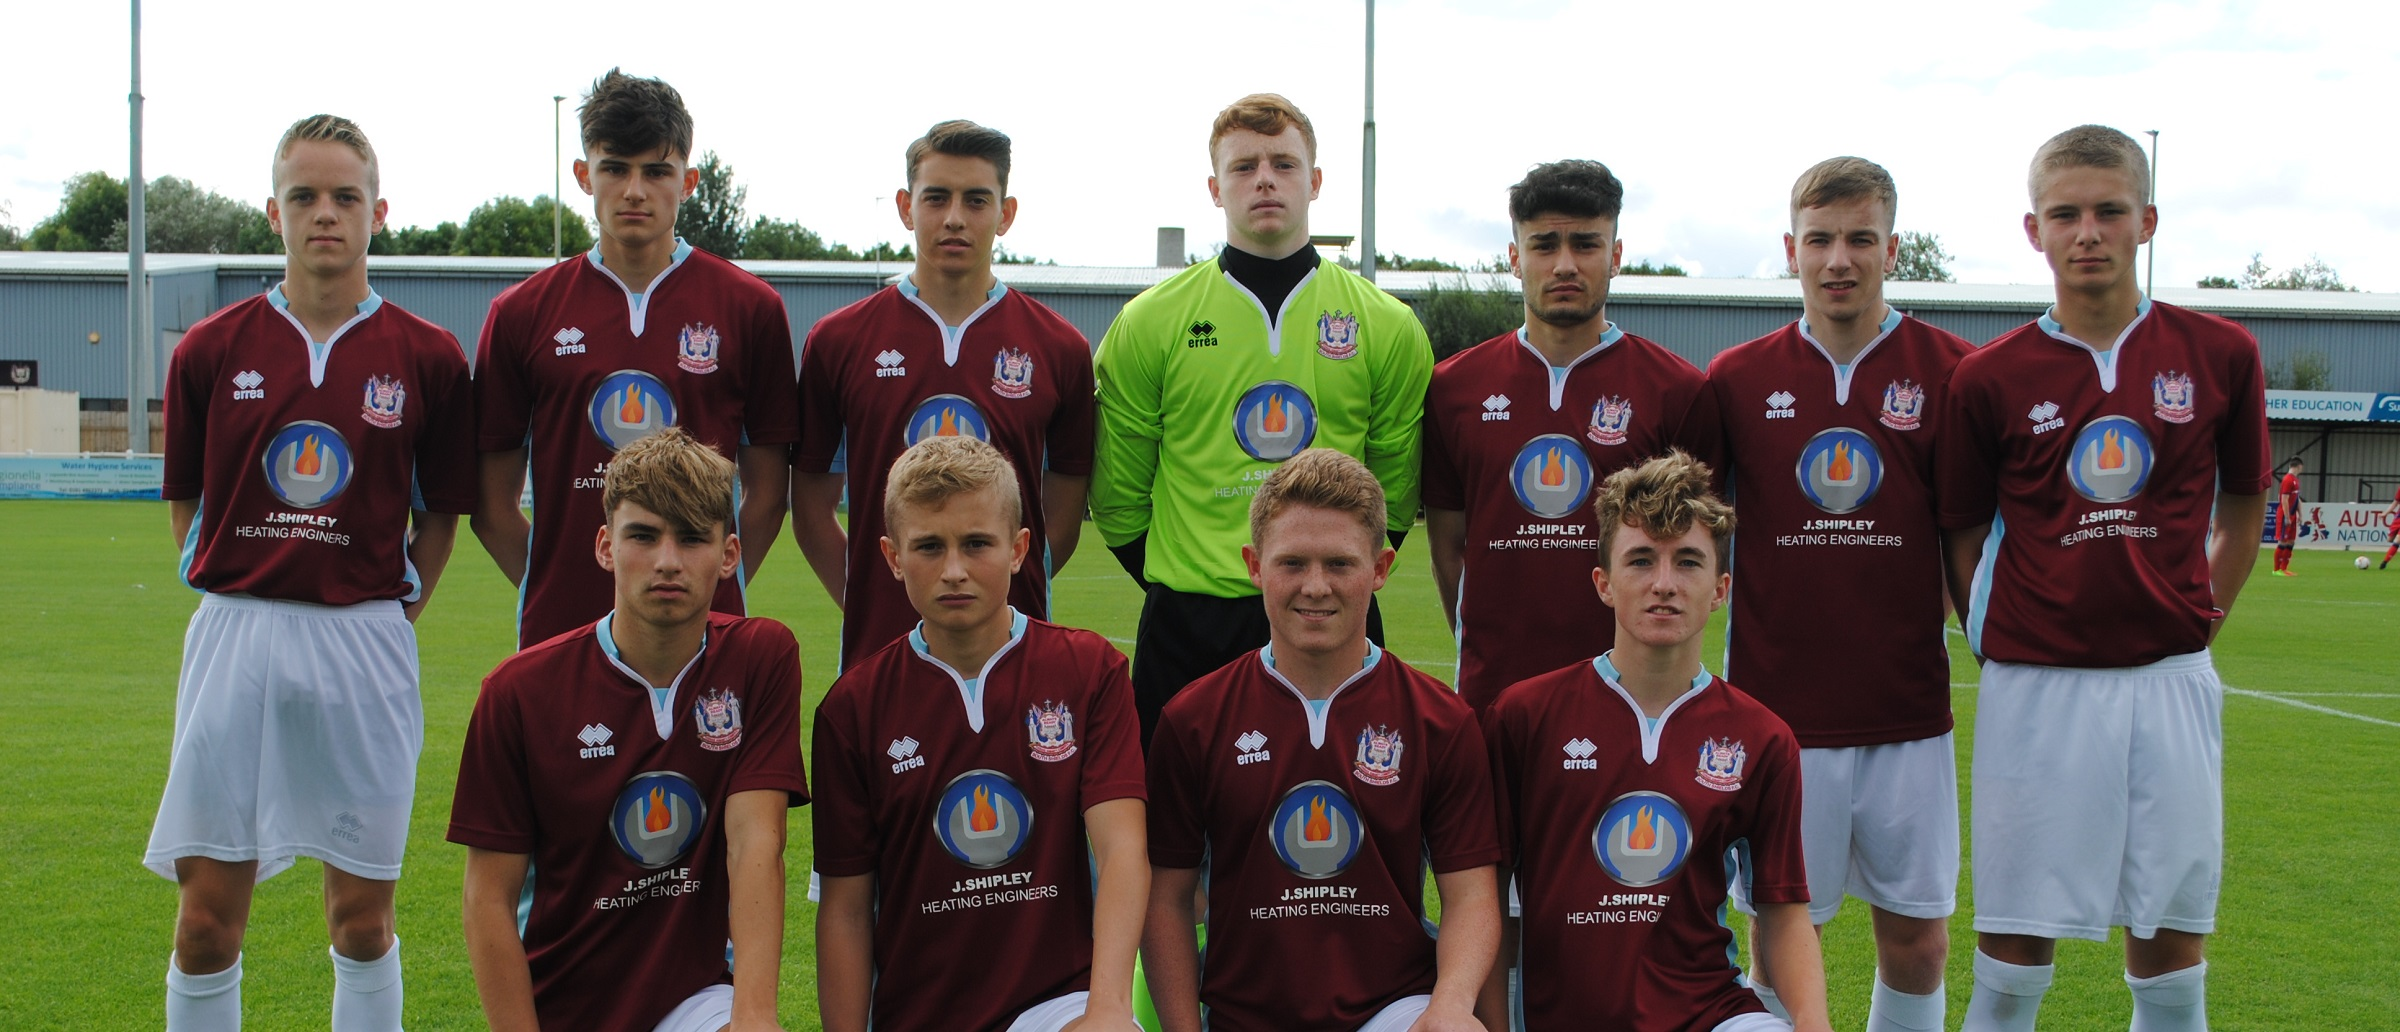 Academy team ready for big FA Youth Cup tie at Mariners Park